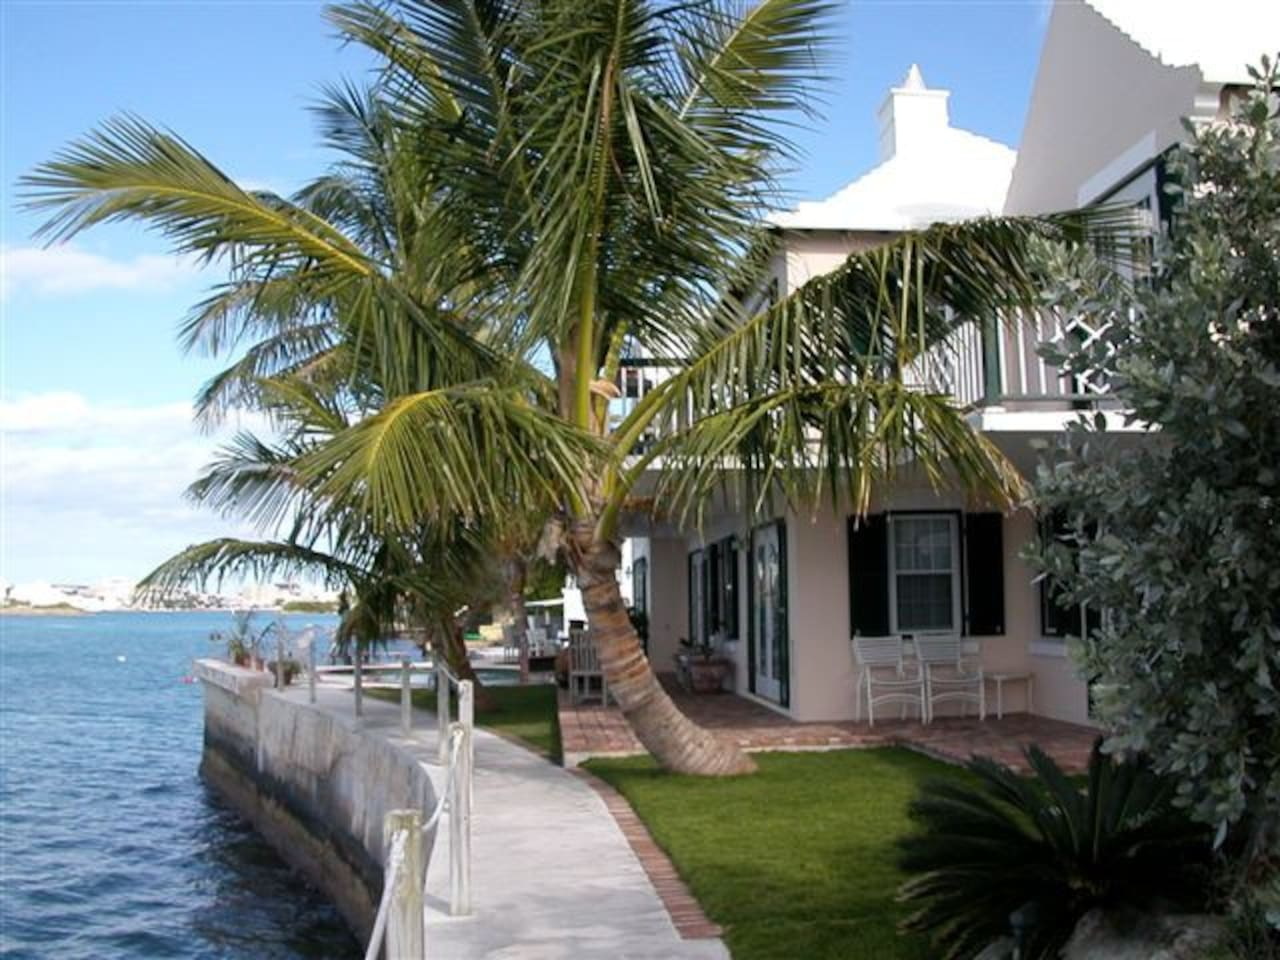 Harbourside B&B with pool and Harbour swimming and snorkelling only moments walking to ferry to Hamilton and centrally located on Island